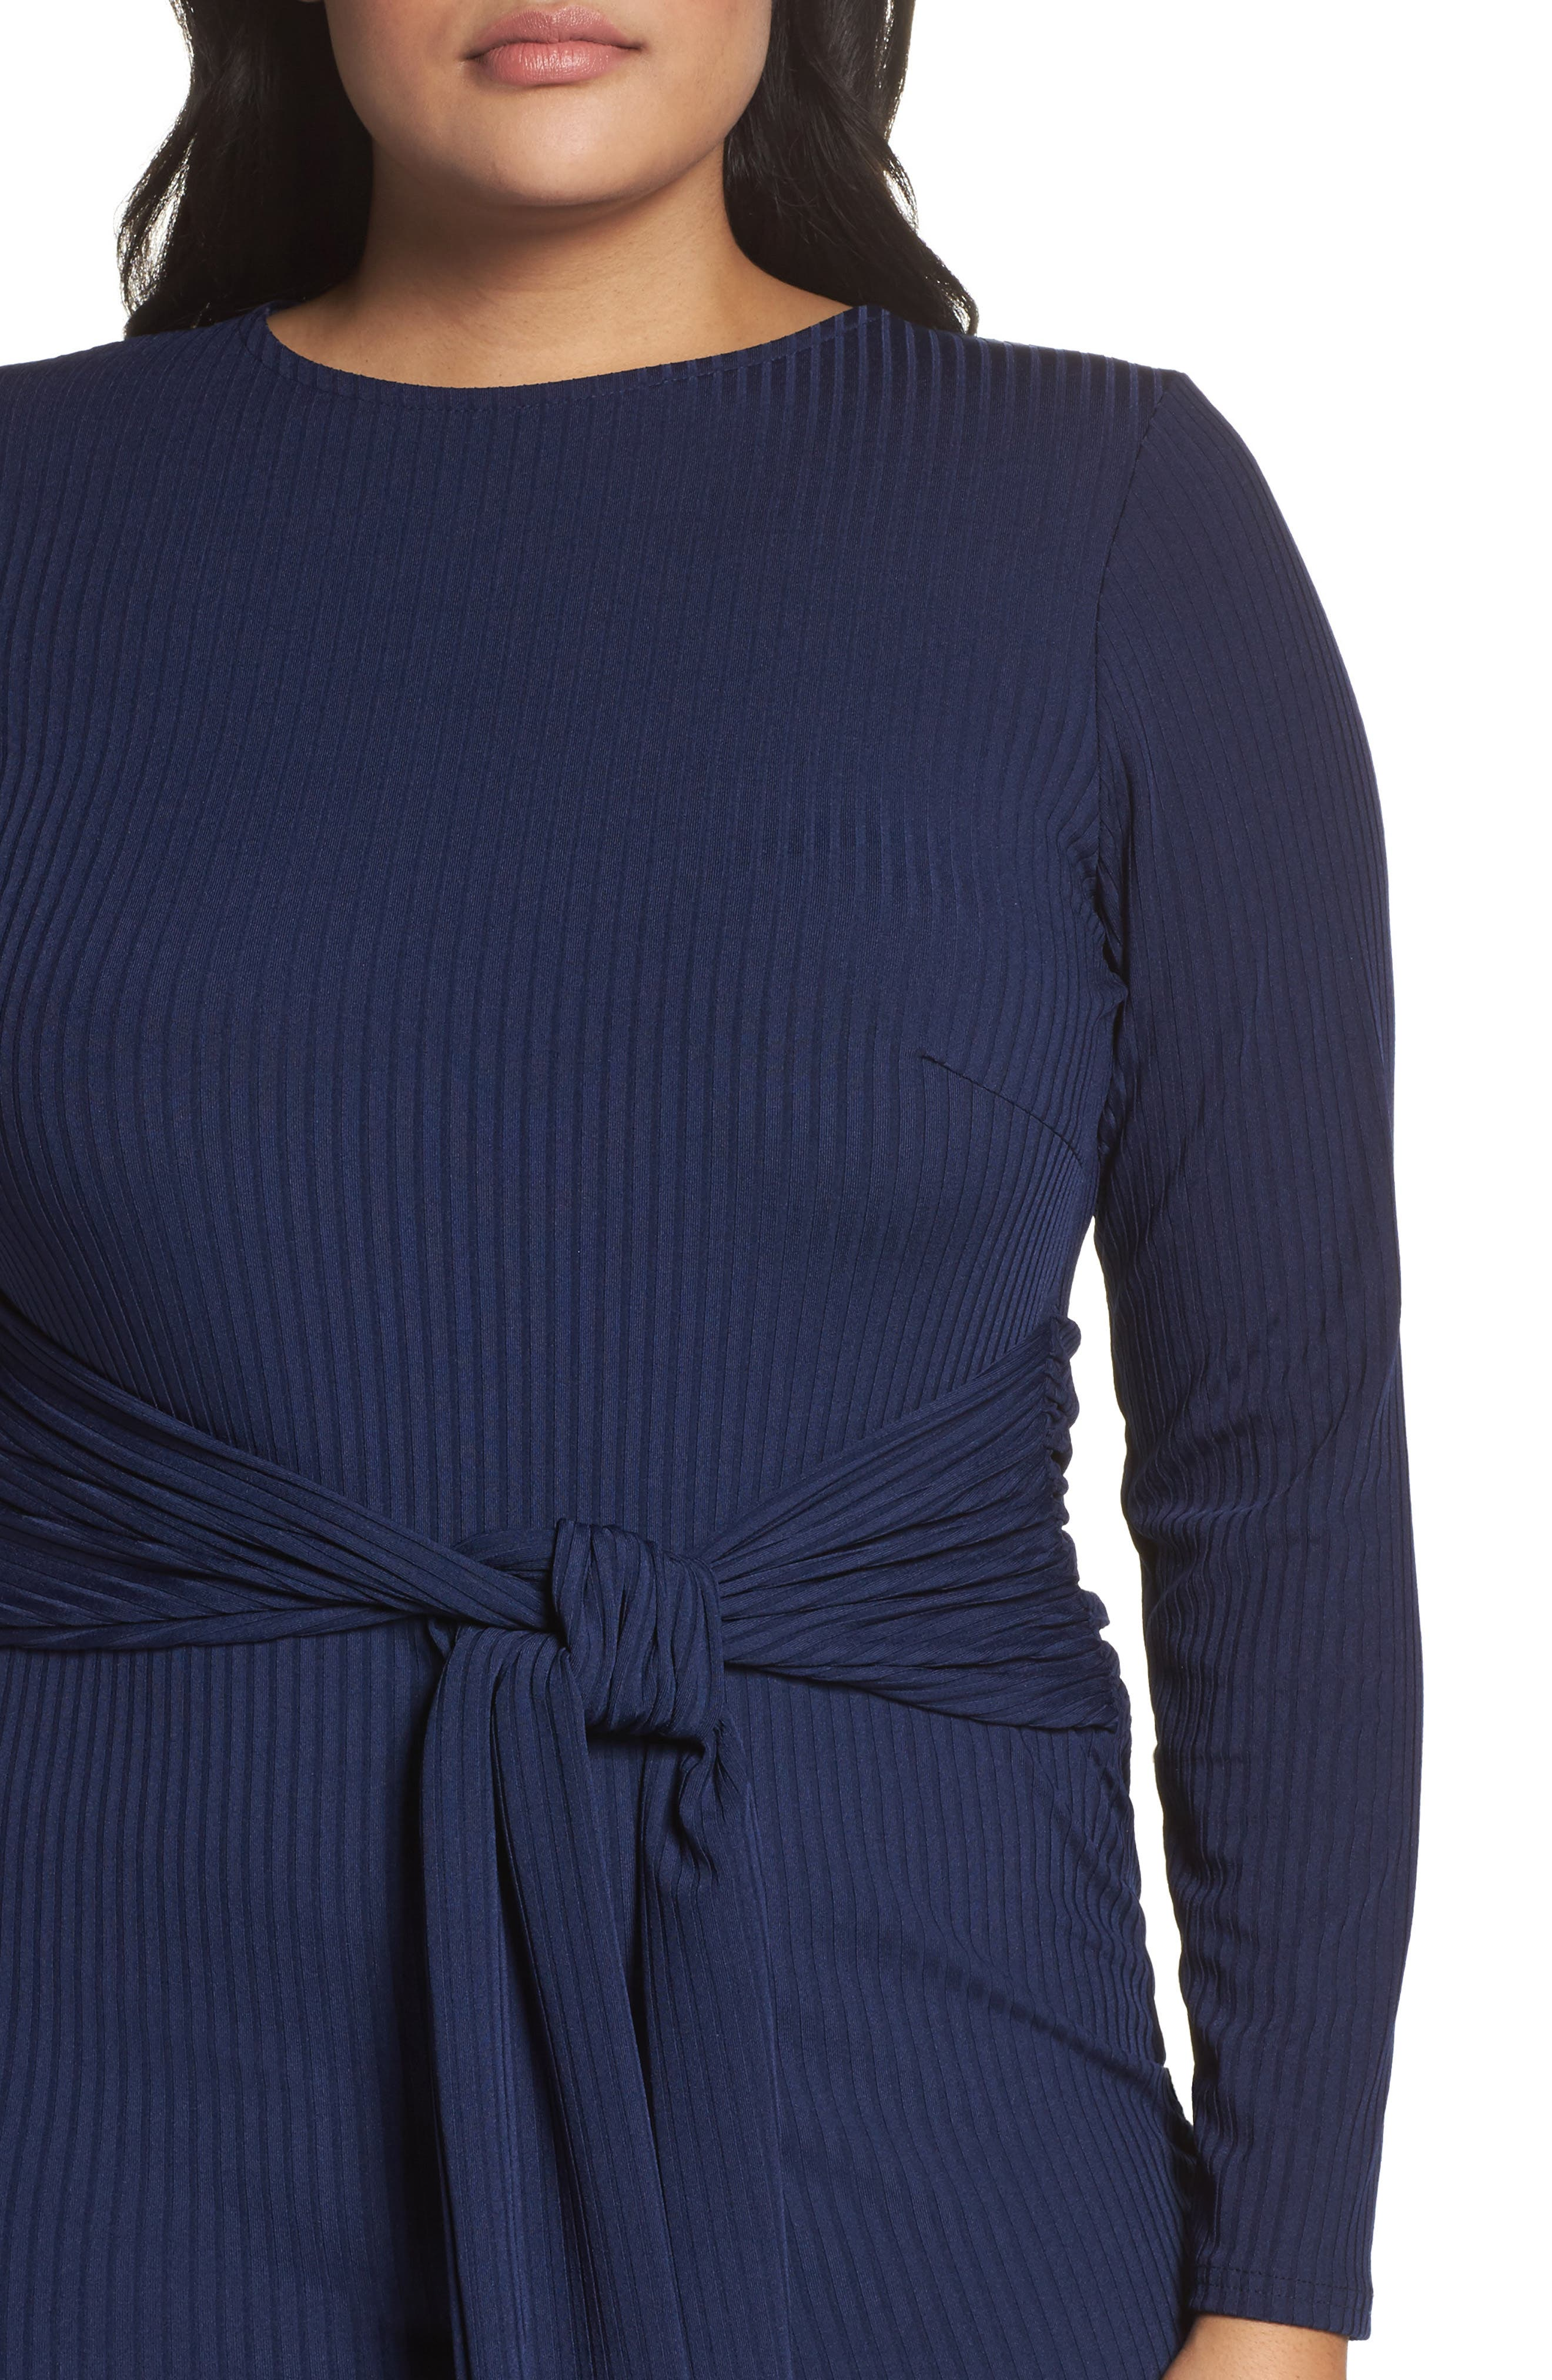 Tie Front Ribbed Sheath Dress,                             Alternate thumbnail 4, color,                             410